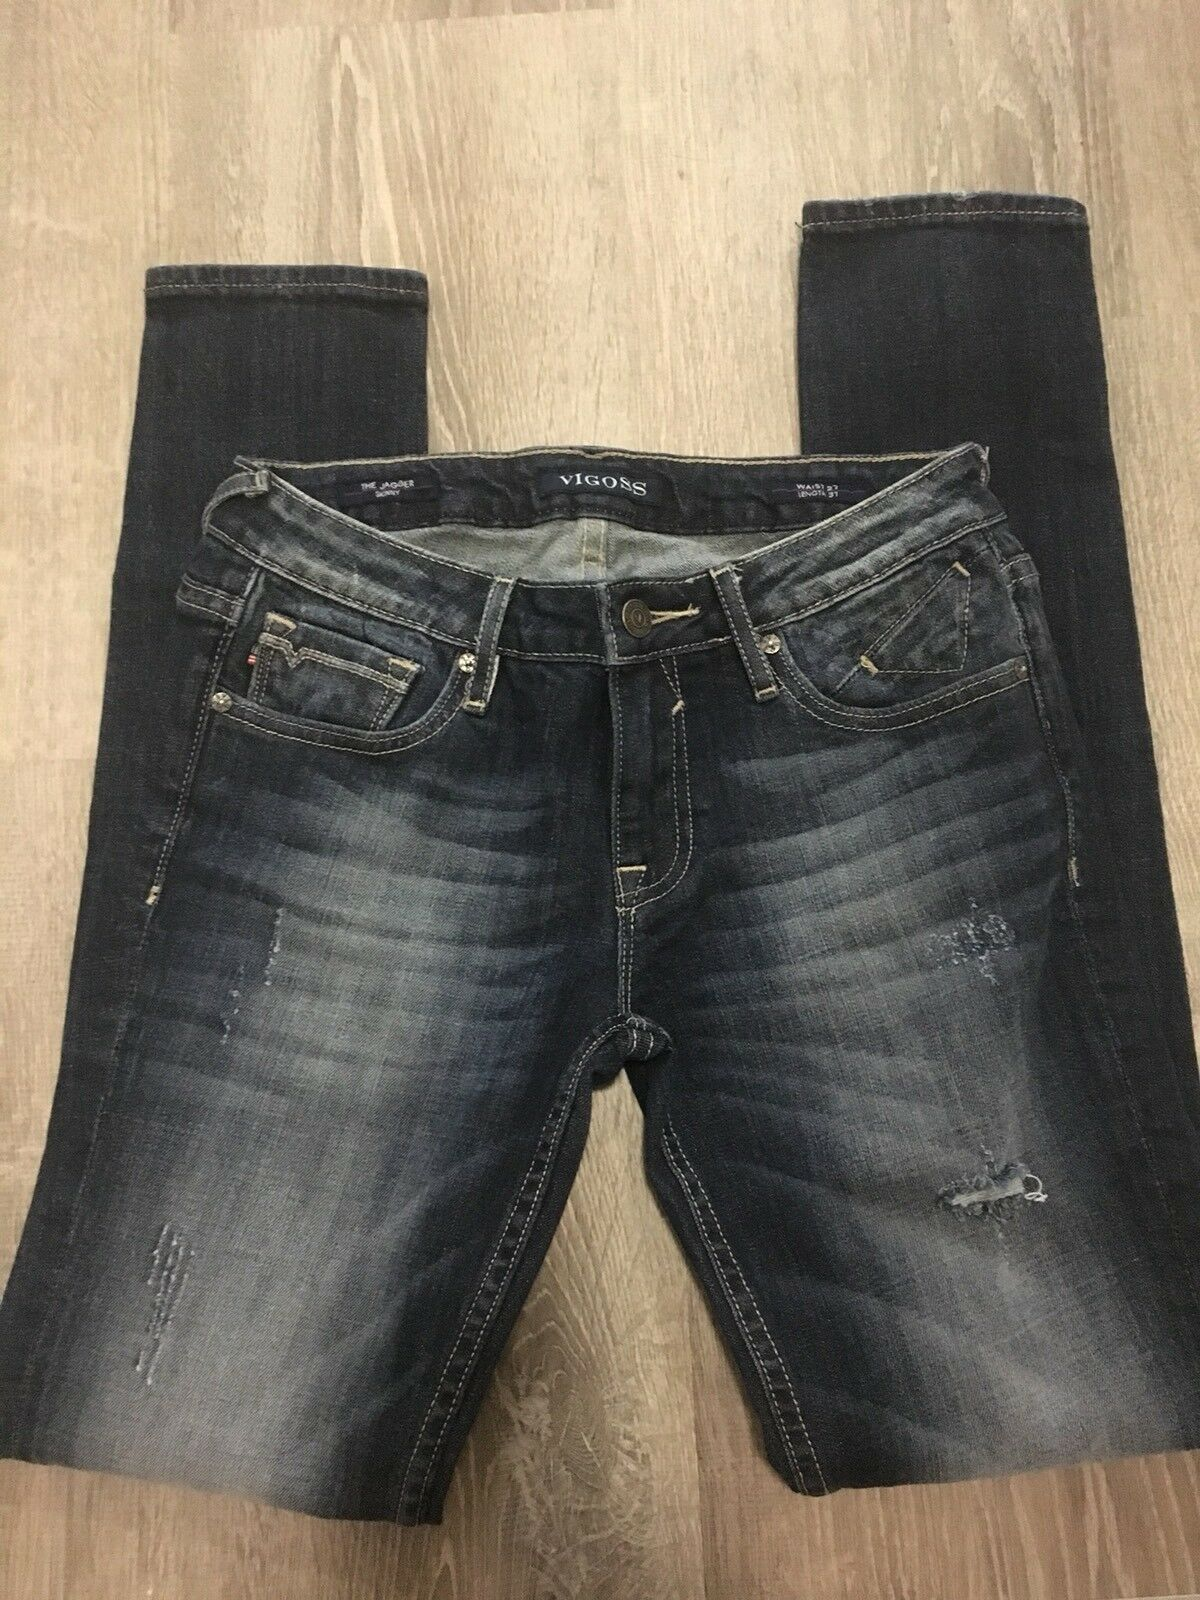 VIGOSS Womens Jeans sz 27 Dark bluee Denim Distressed Ripped Skinny Q19